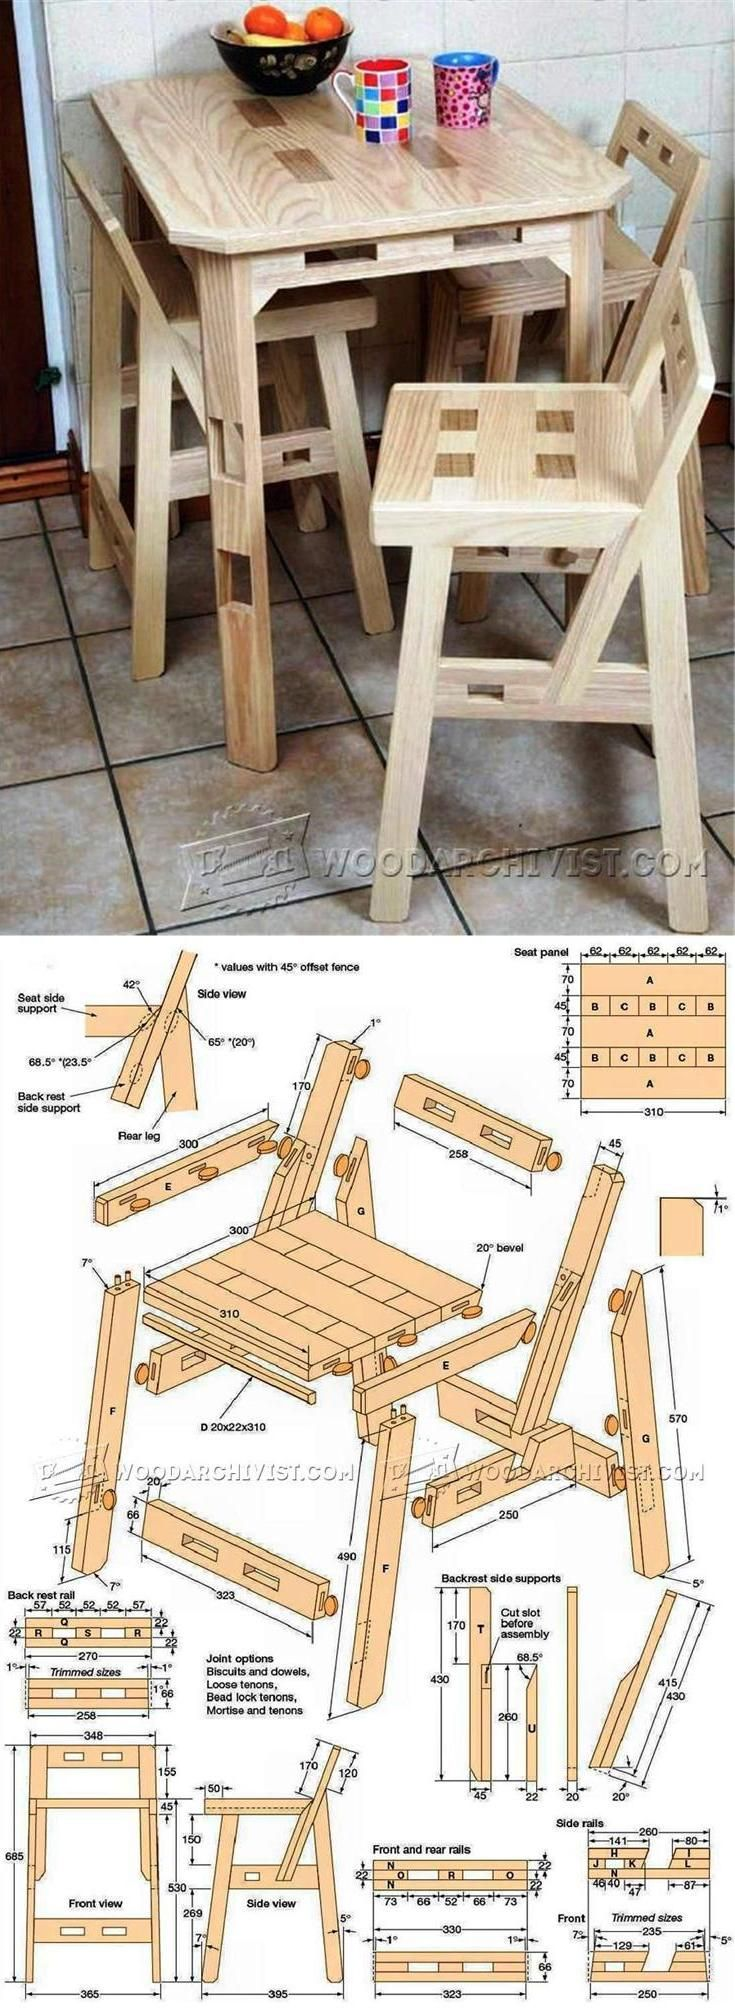 Kitchen Chair Plans - Furniture Plans and Projects | WoodArchivist.com